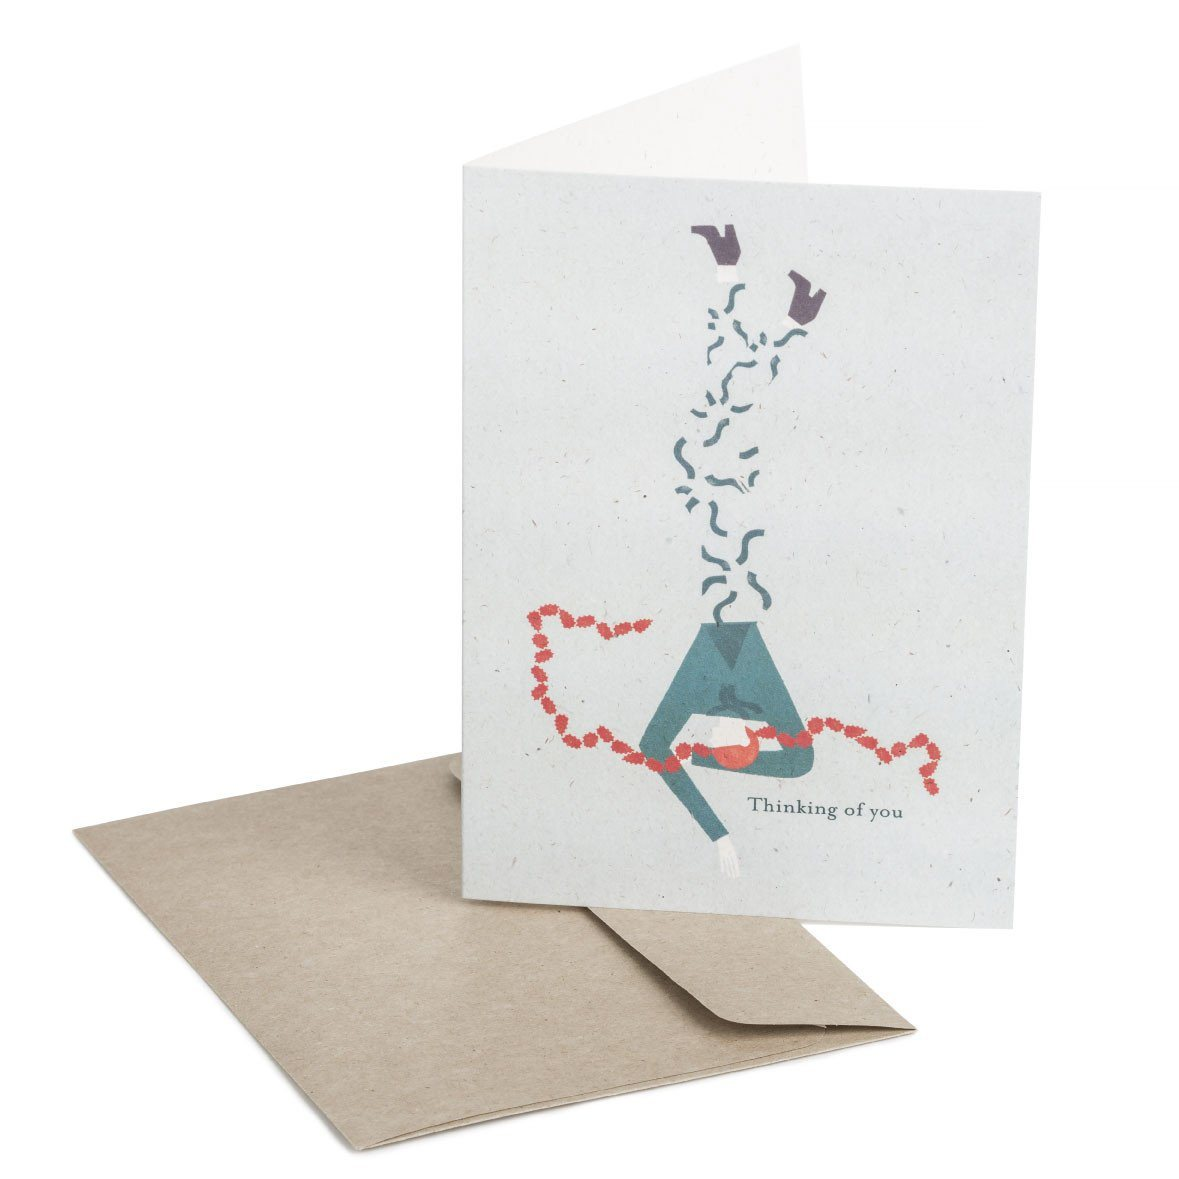 Thinking of you Greeting Card - Generic Greeting Cards - MULTIFOLIA ATELIER di Rita Girola - Naiise